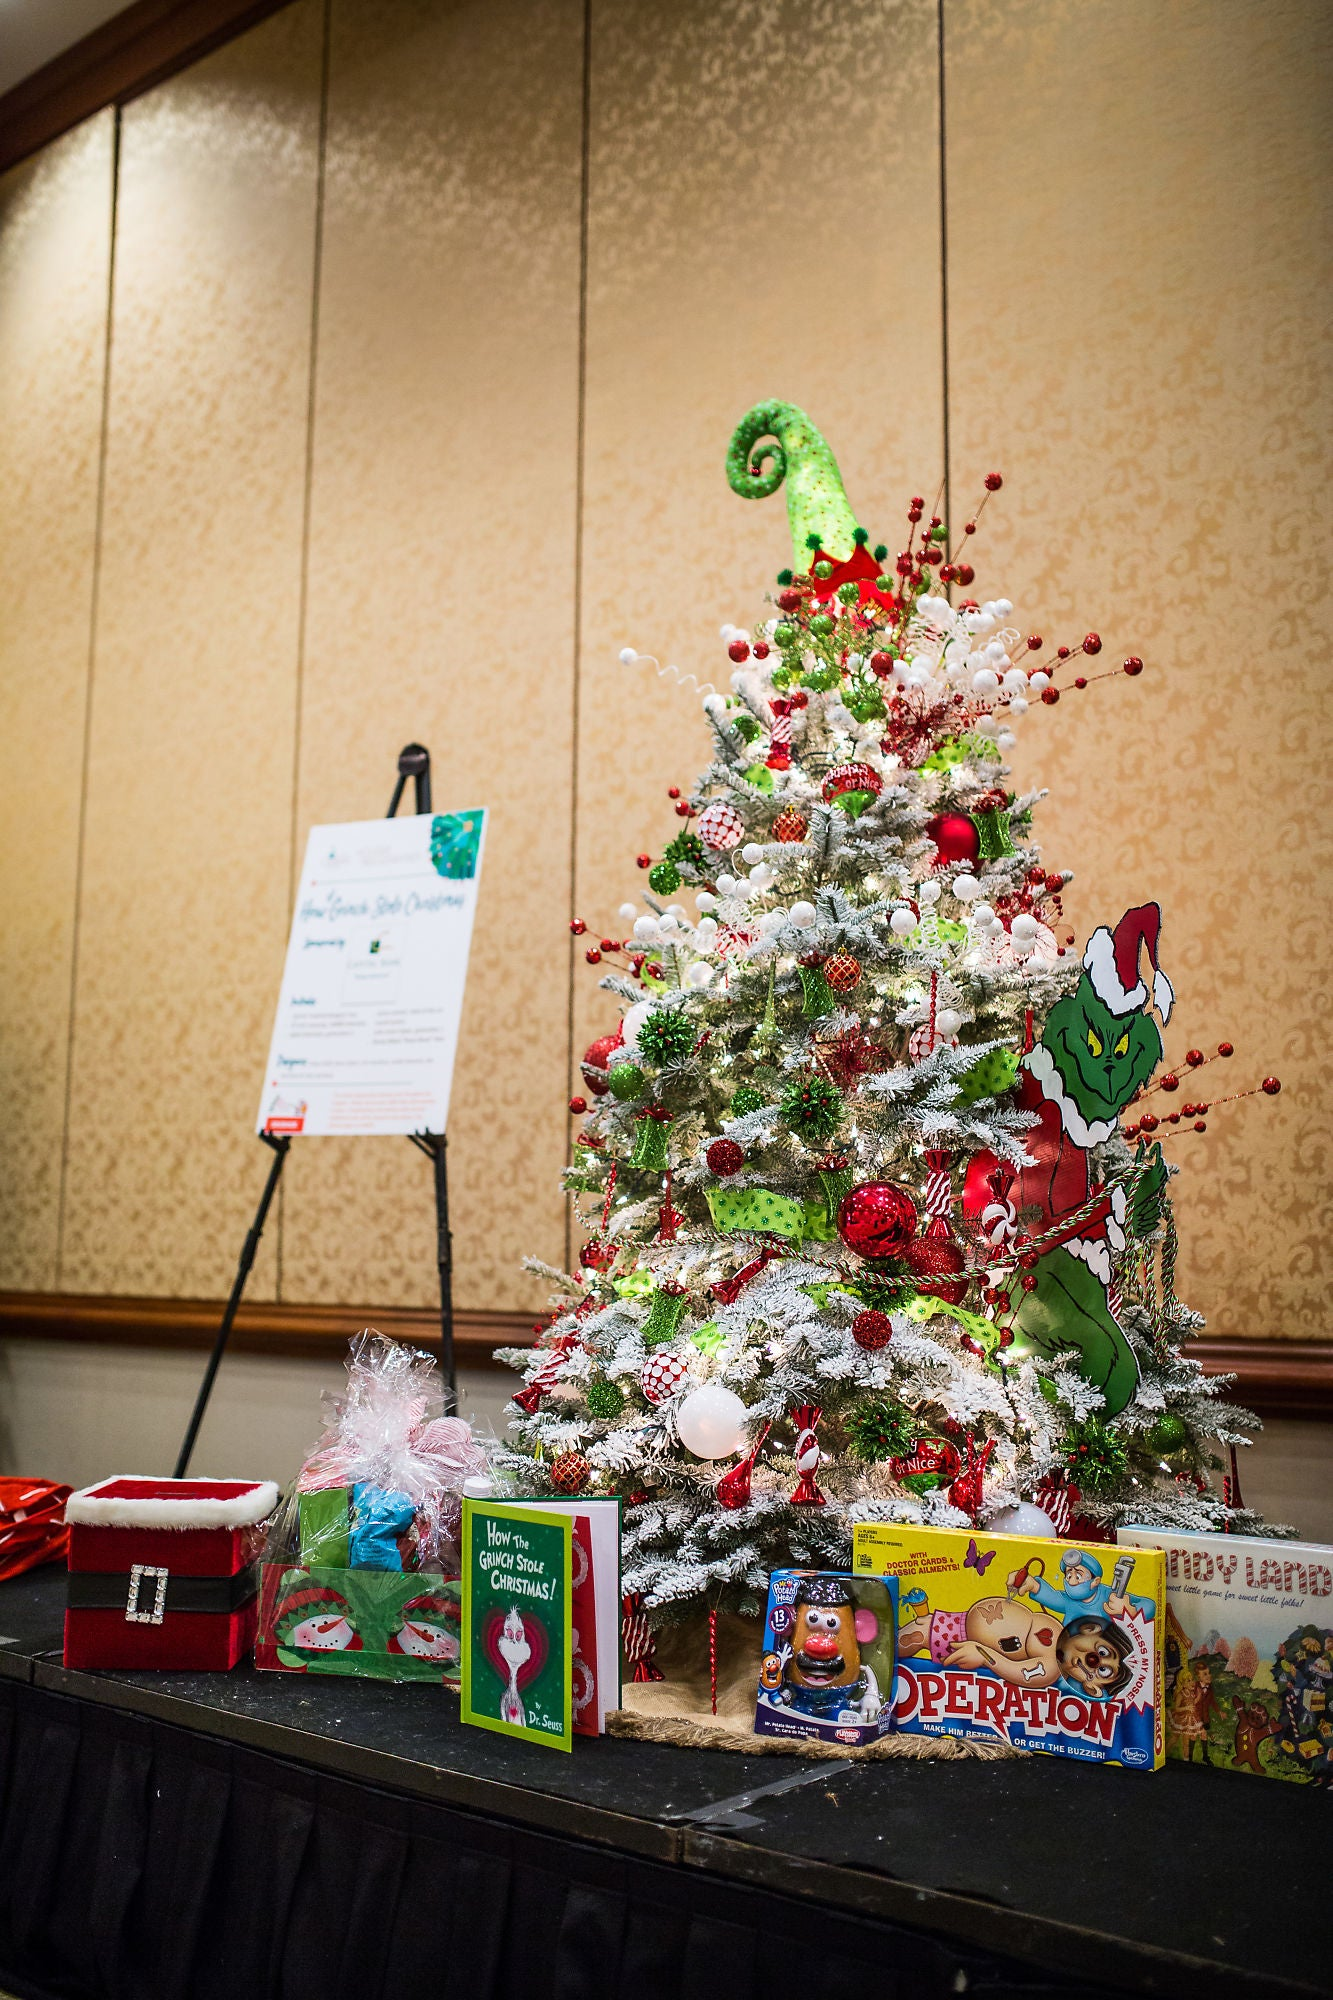 A grinch themed Christmas tree surrounded by toys and an information board